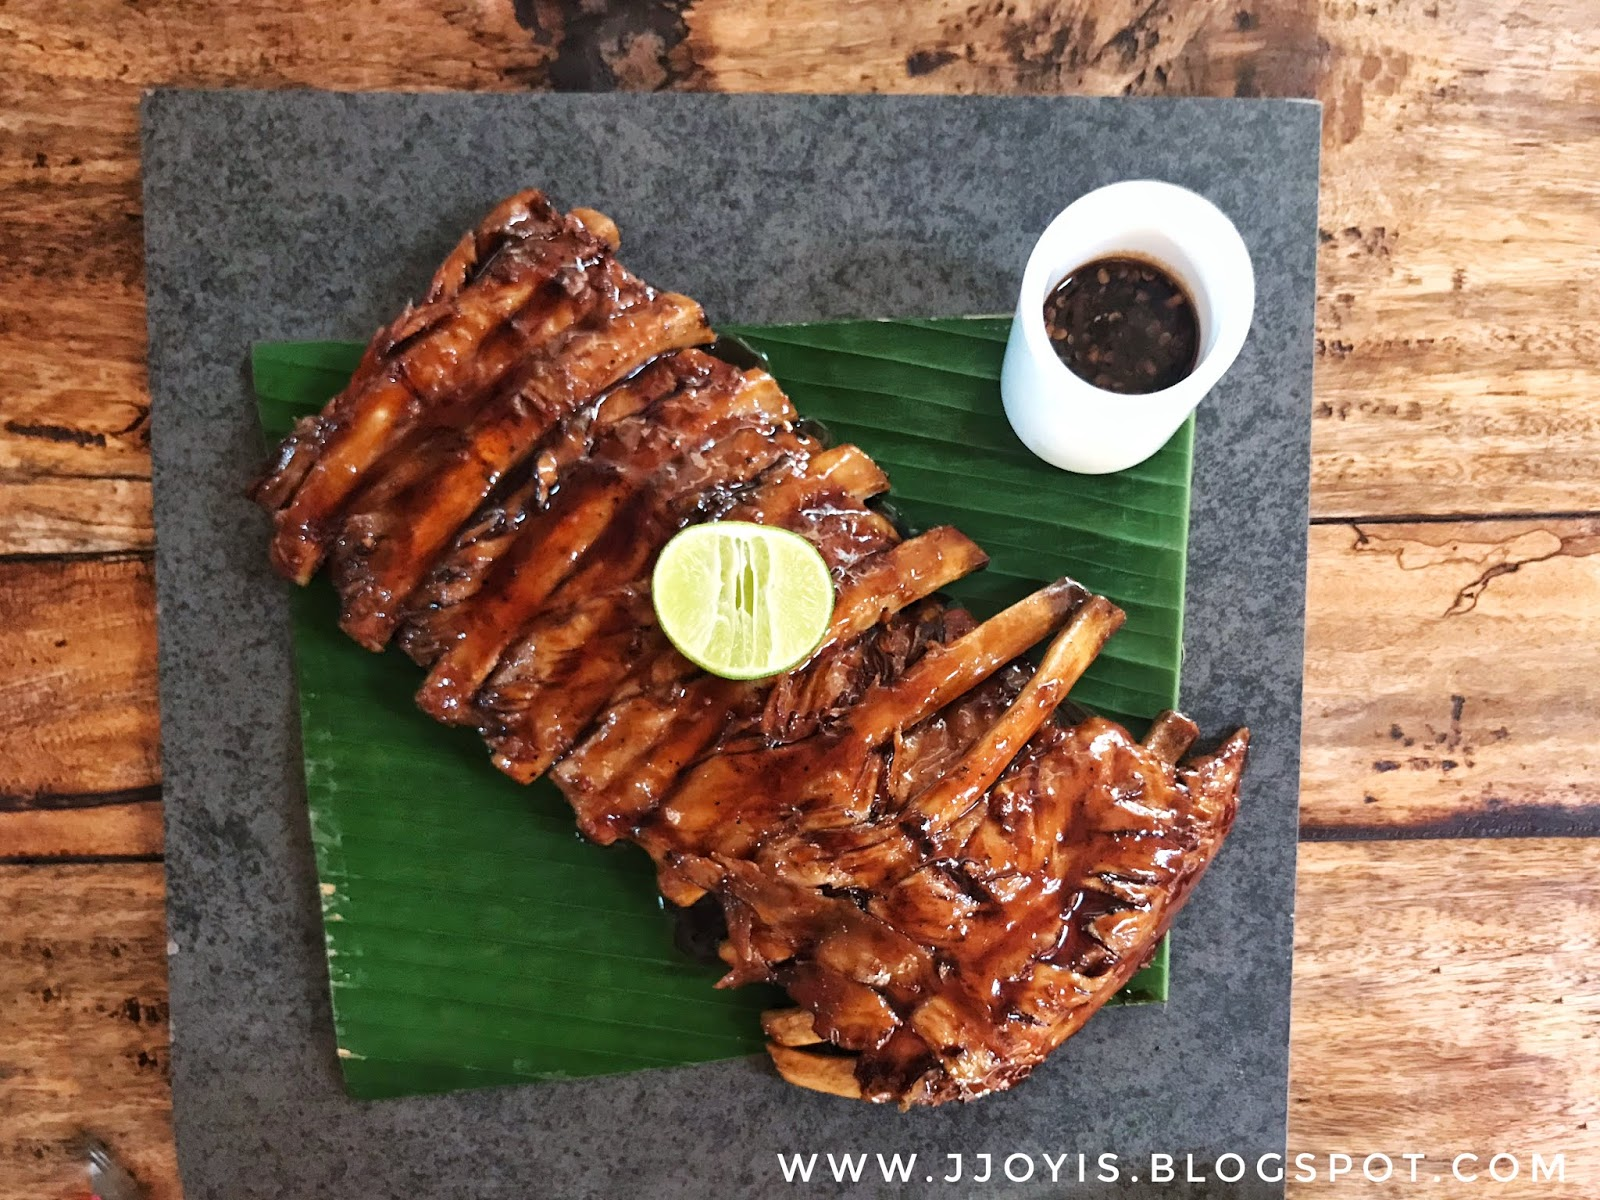 phuket best ribs naughty nuri patong recommend what to eat